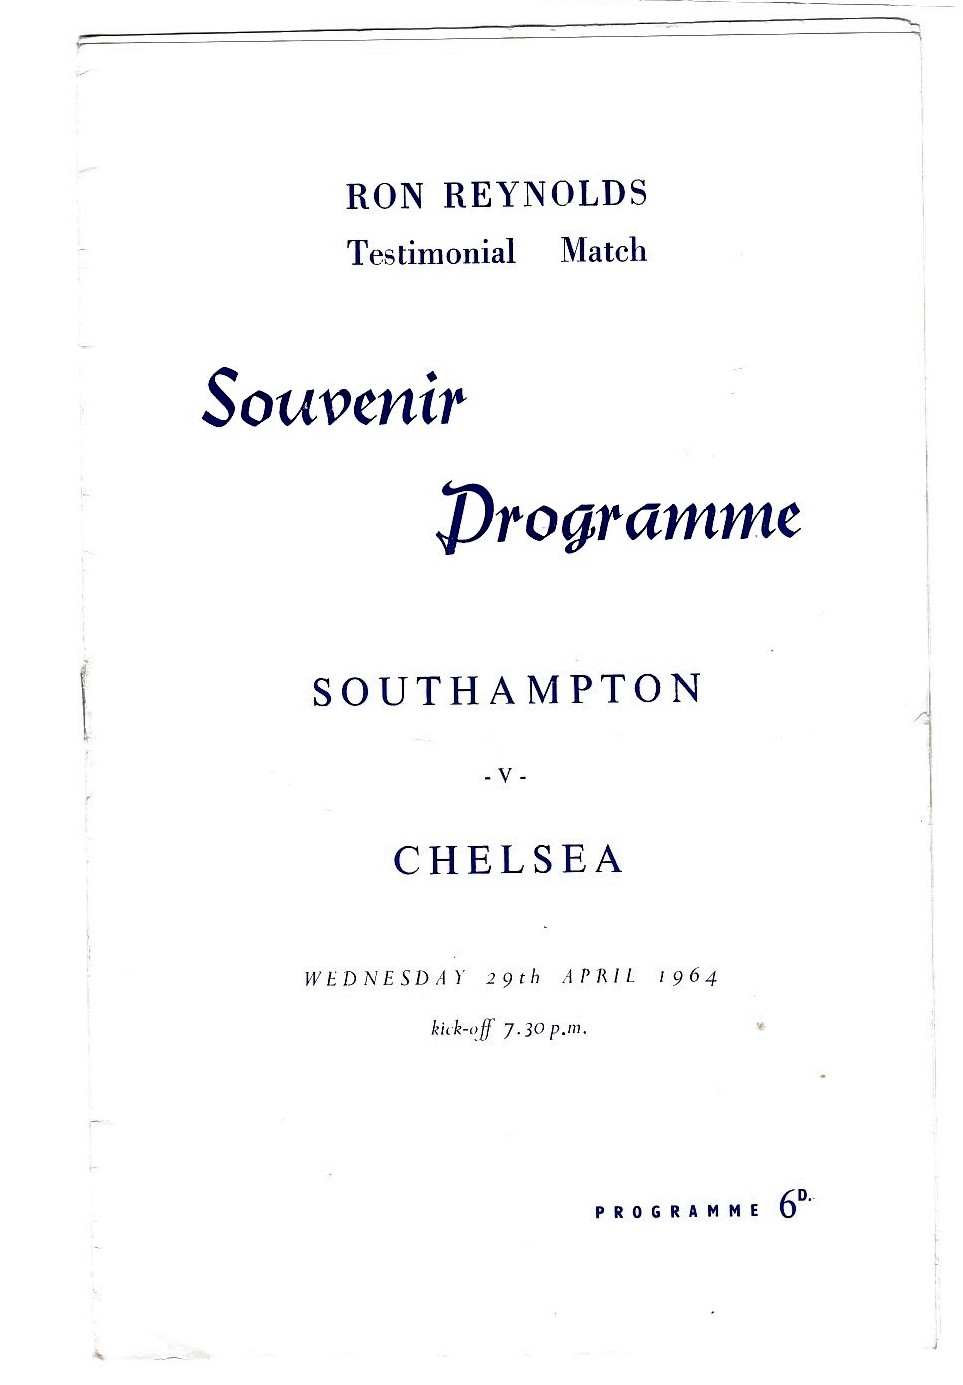 Southampton v Chelsea 1964 April 29th Ron Reynolds Testimonial Match mid page loose vertical crease